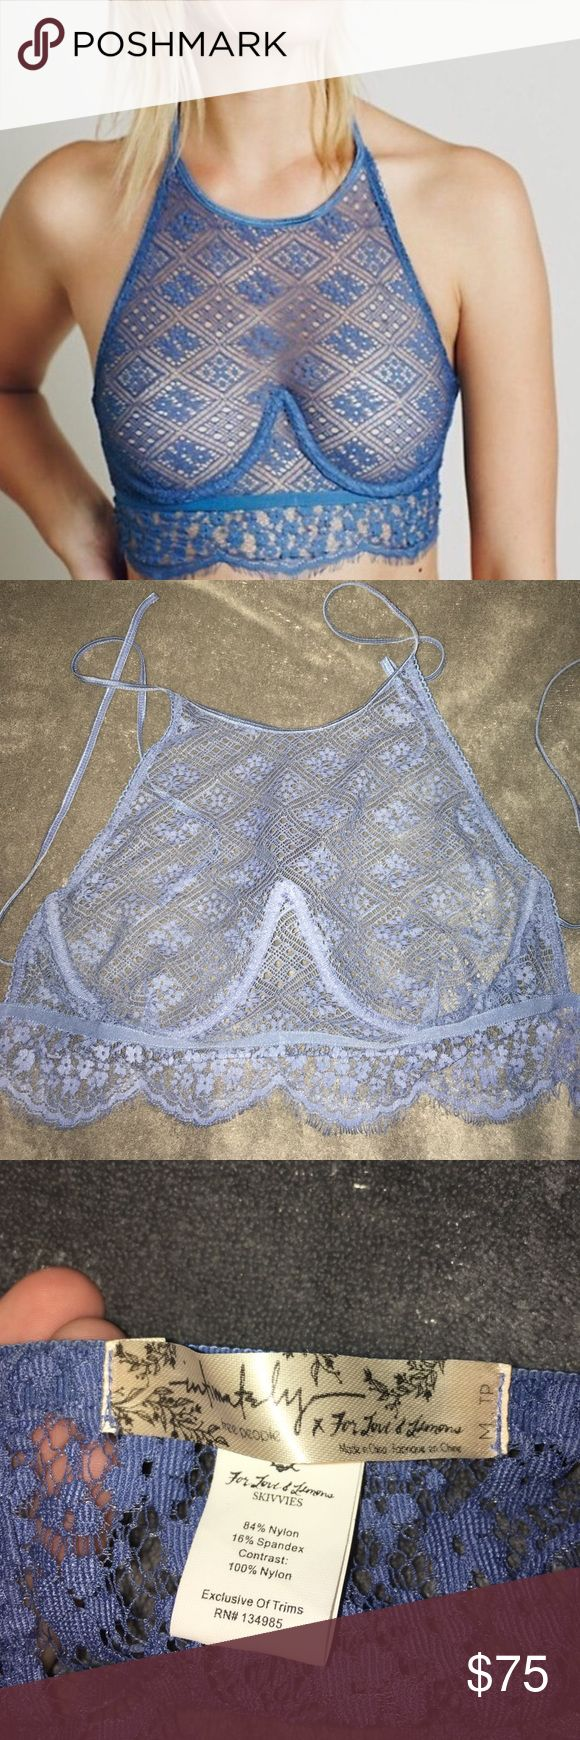 Fl&l vixen bra Never worn, in perfect condition. For Love and Lemons Intimates & Sleepwear Bras